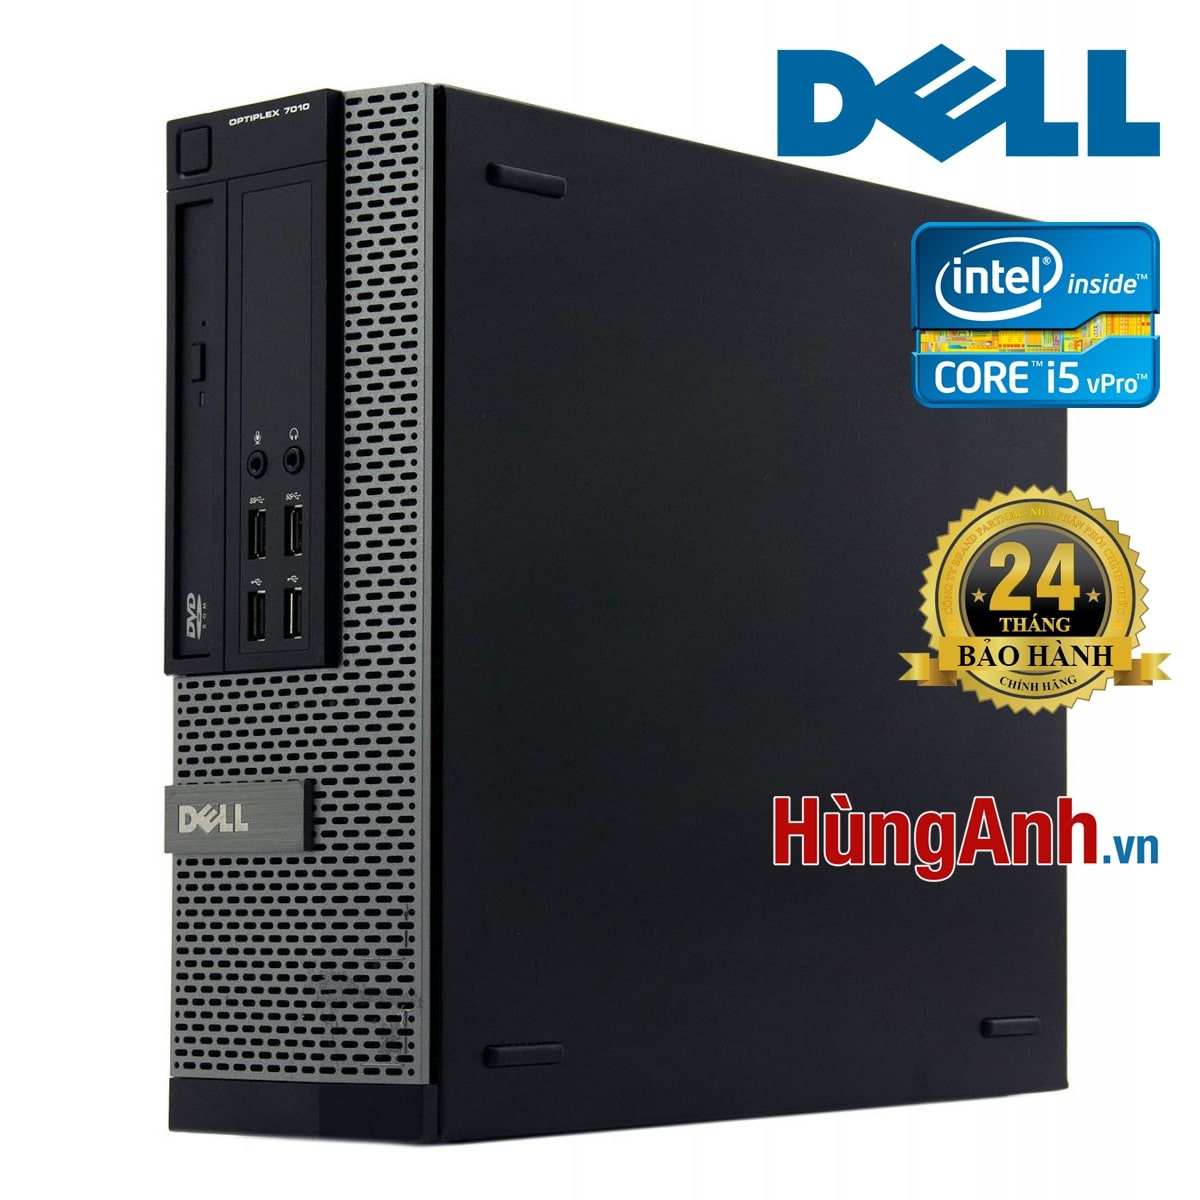 Case Dell OptiPlex 7010 SFF | Core i5 -3470 3,4GHz | RAM 4GB | SSD 120GB + HDD 250GB